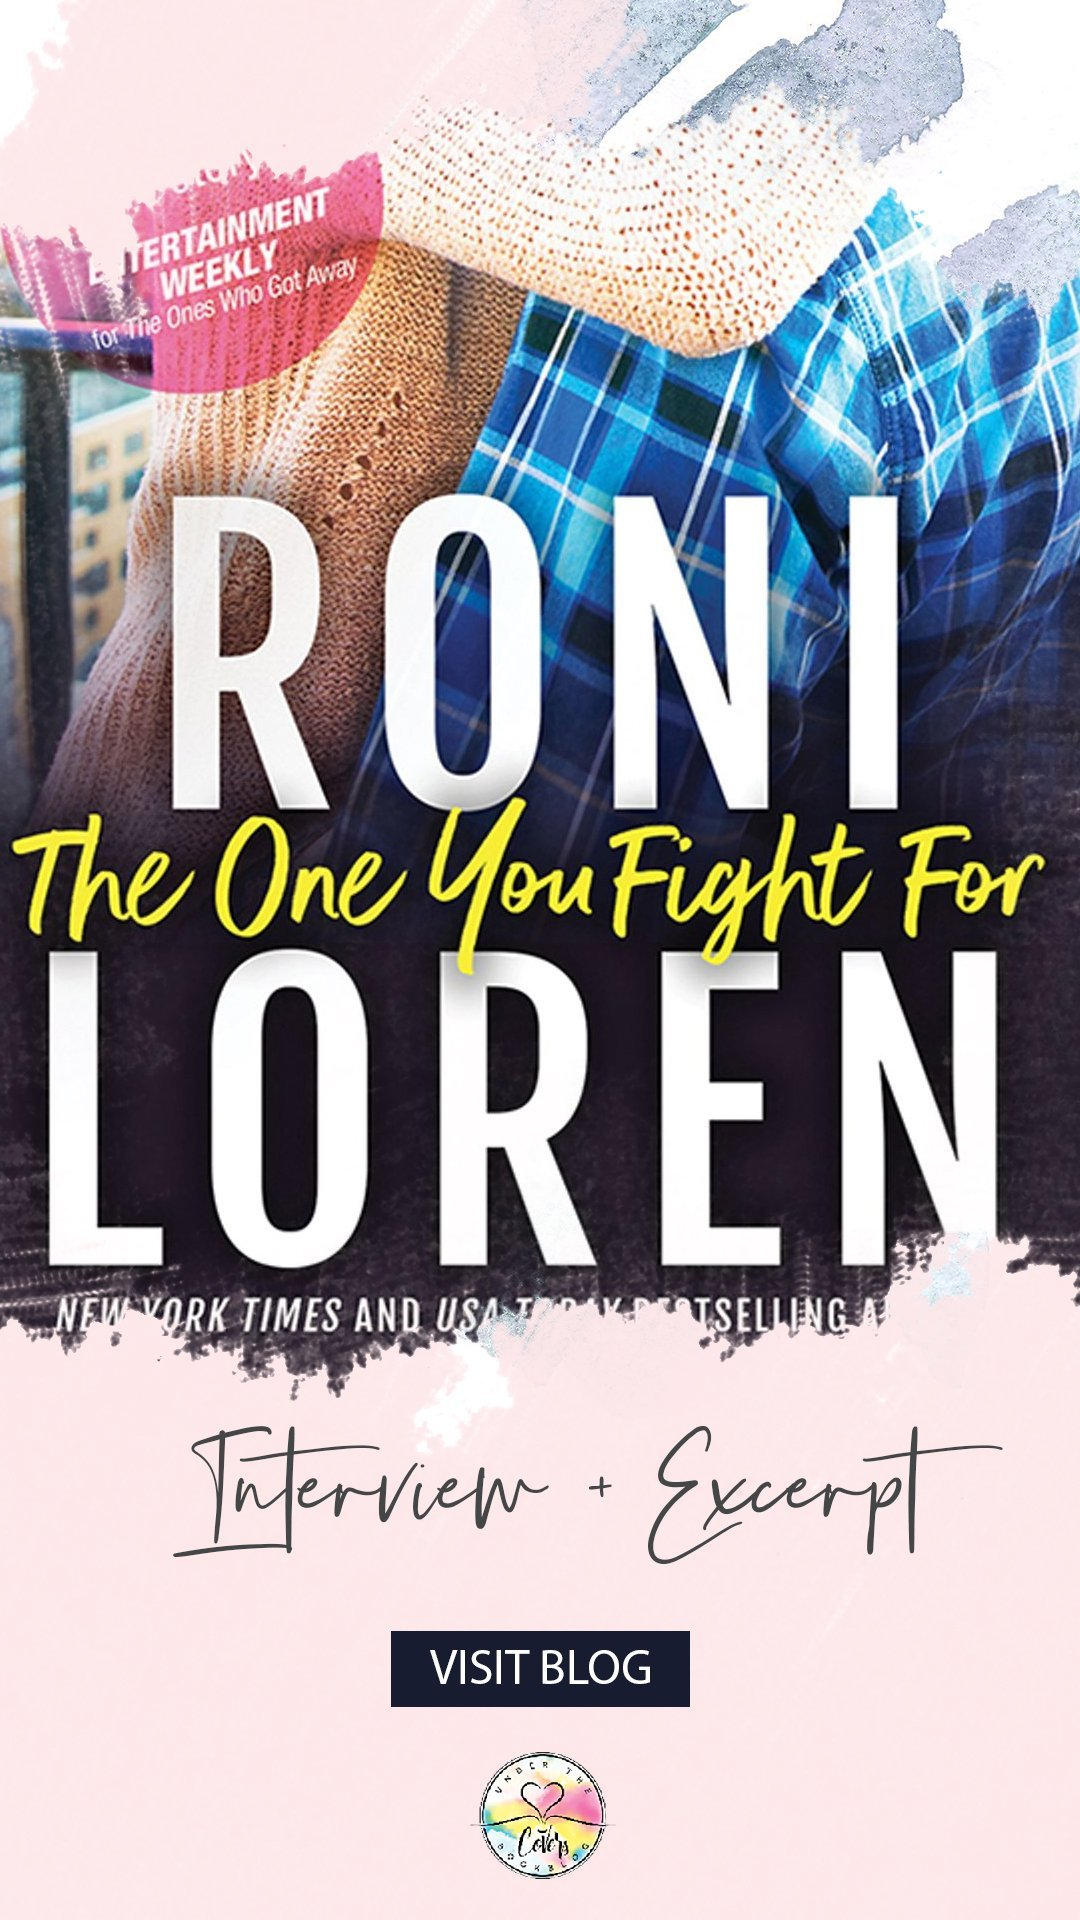 Interview and Giveaway with Roni Loren